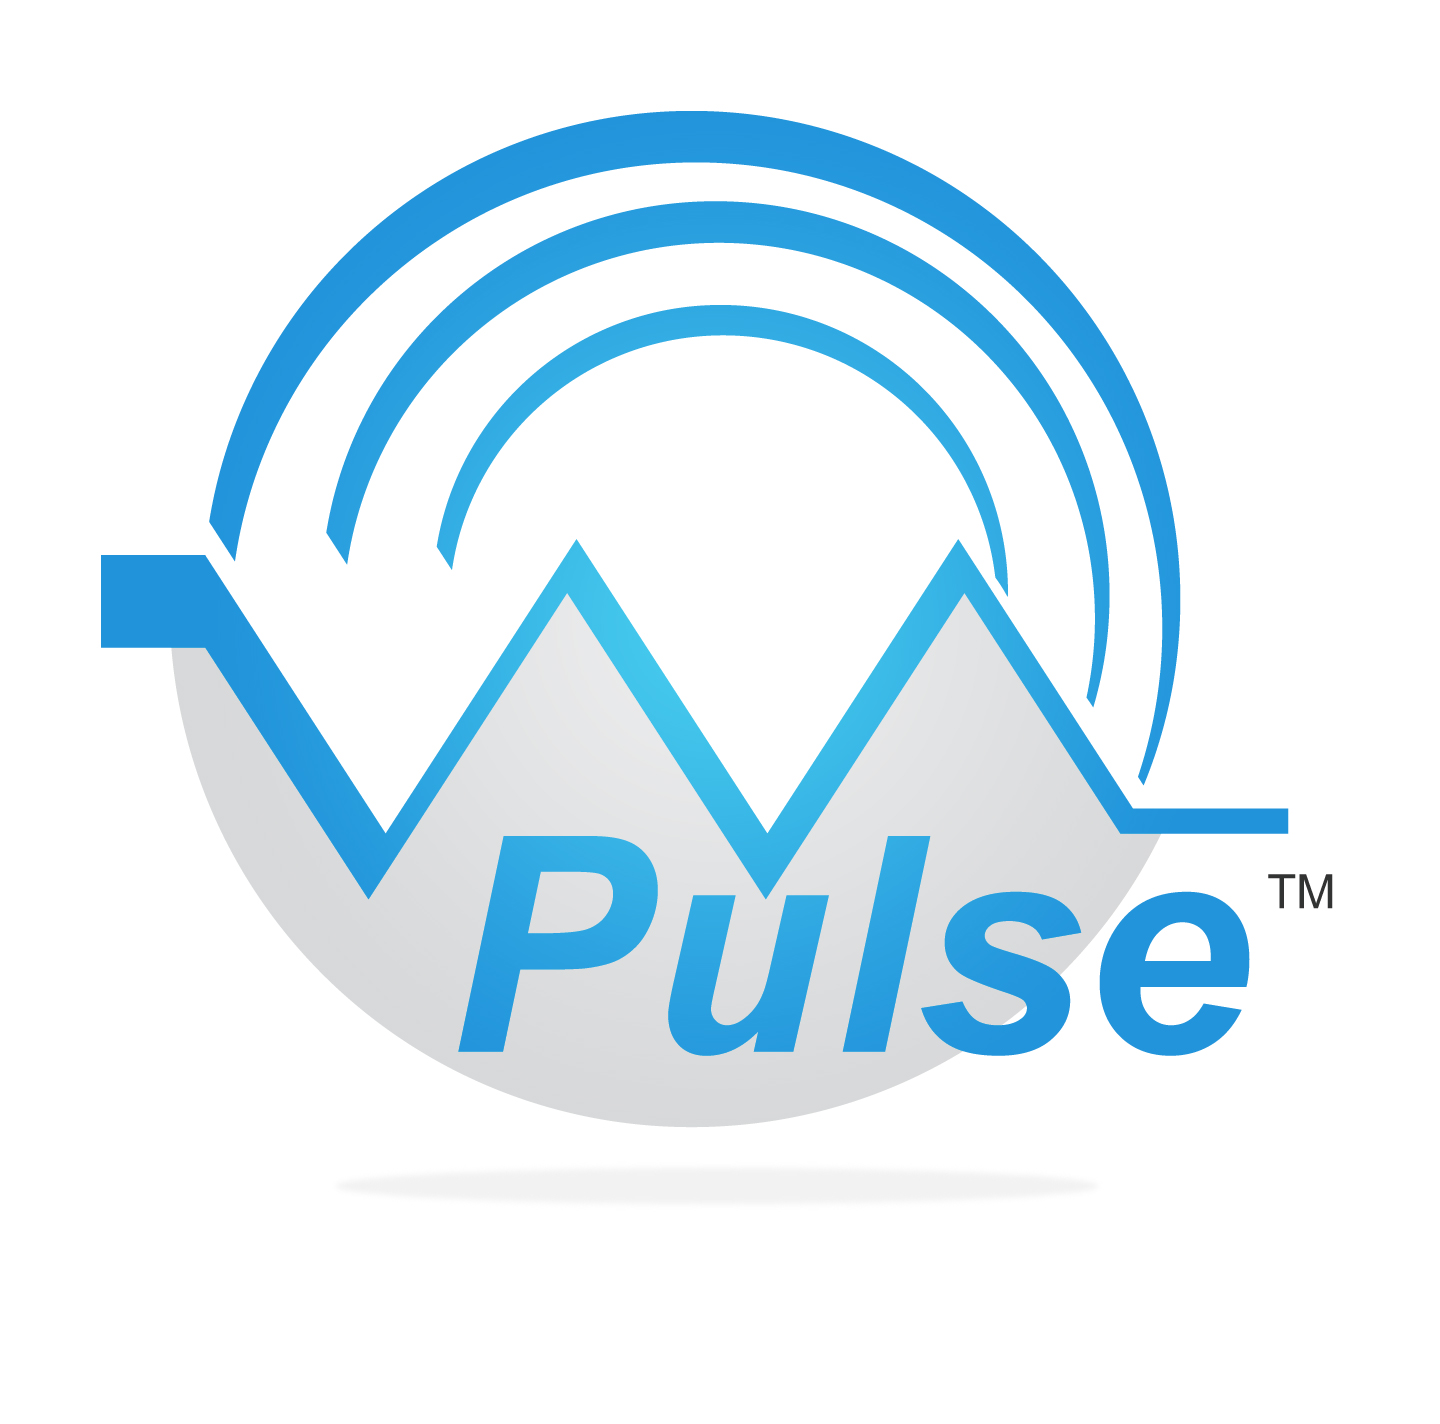 Logo Design by Charles Essex Valido - Entry No. 5 in the Logo Design Contest Captivating Logo Design for Pulse.